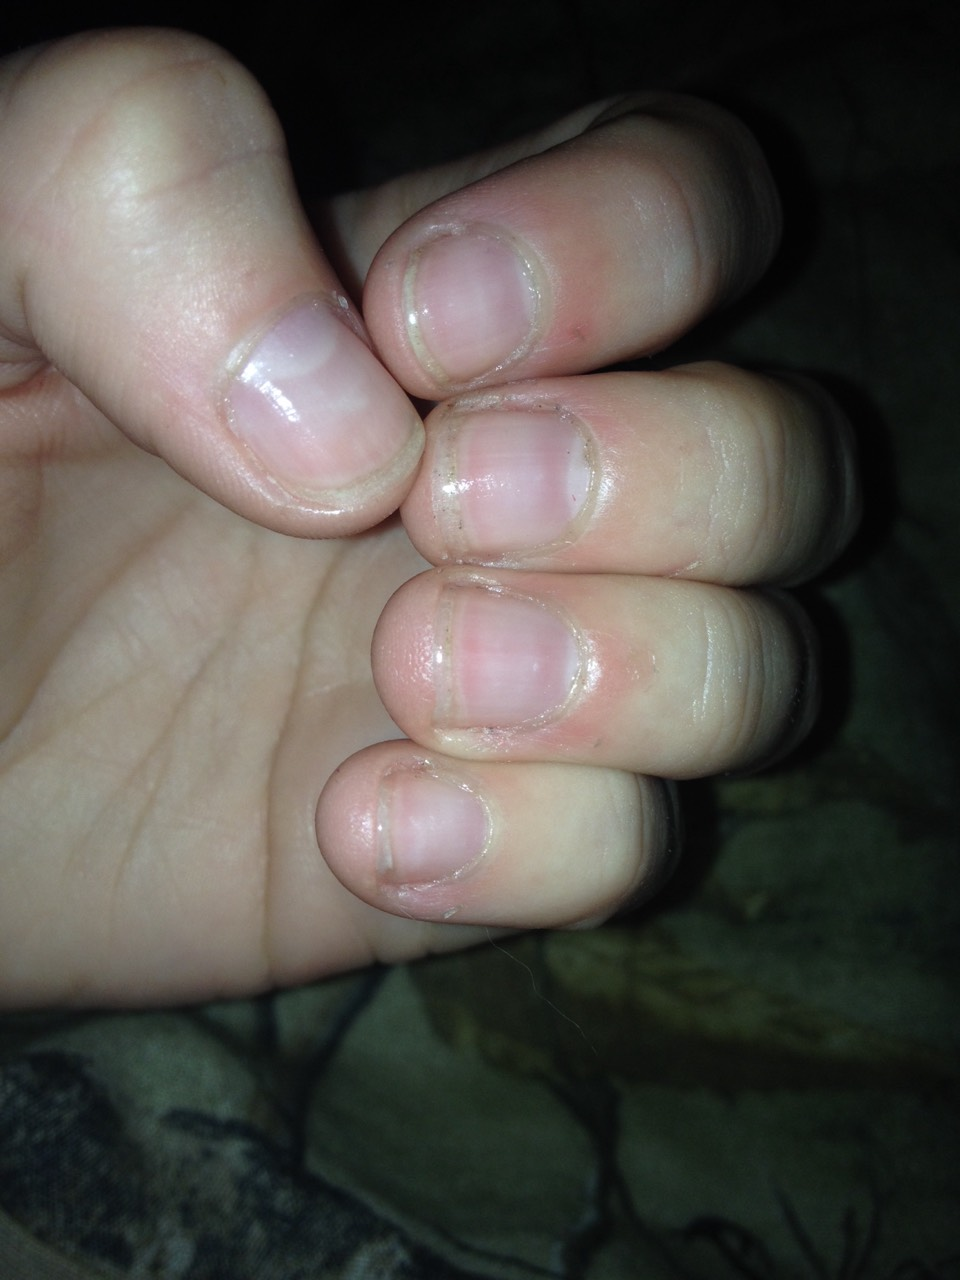 Better right? They're not perfect and a little Yellow and dirty BUT that is normal for growing your nails out. Your nails are still adjusting and will eventually attach to the skin under your nails. Please remember to like and share with friends and family, have more nail confidence!(: